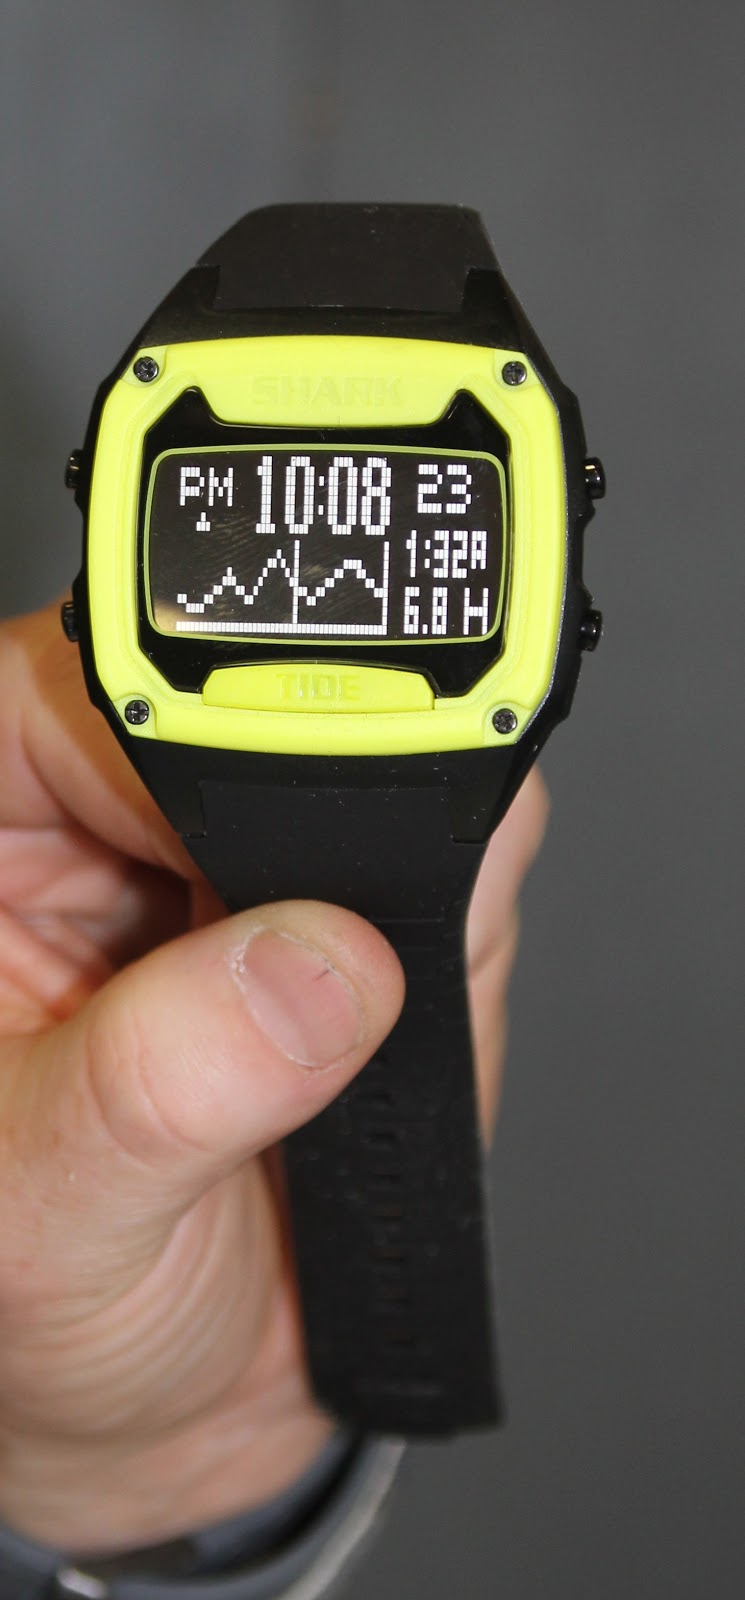 how to set time on shark tide watch